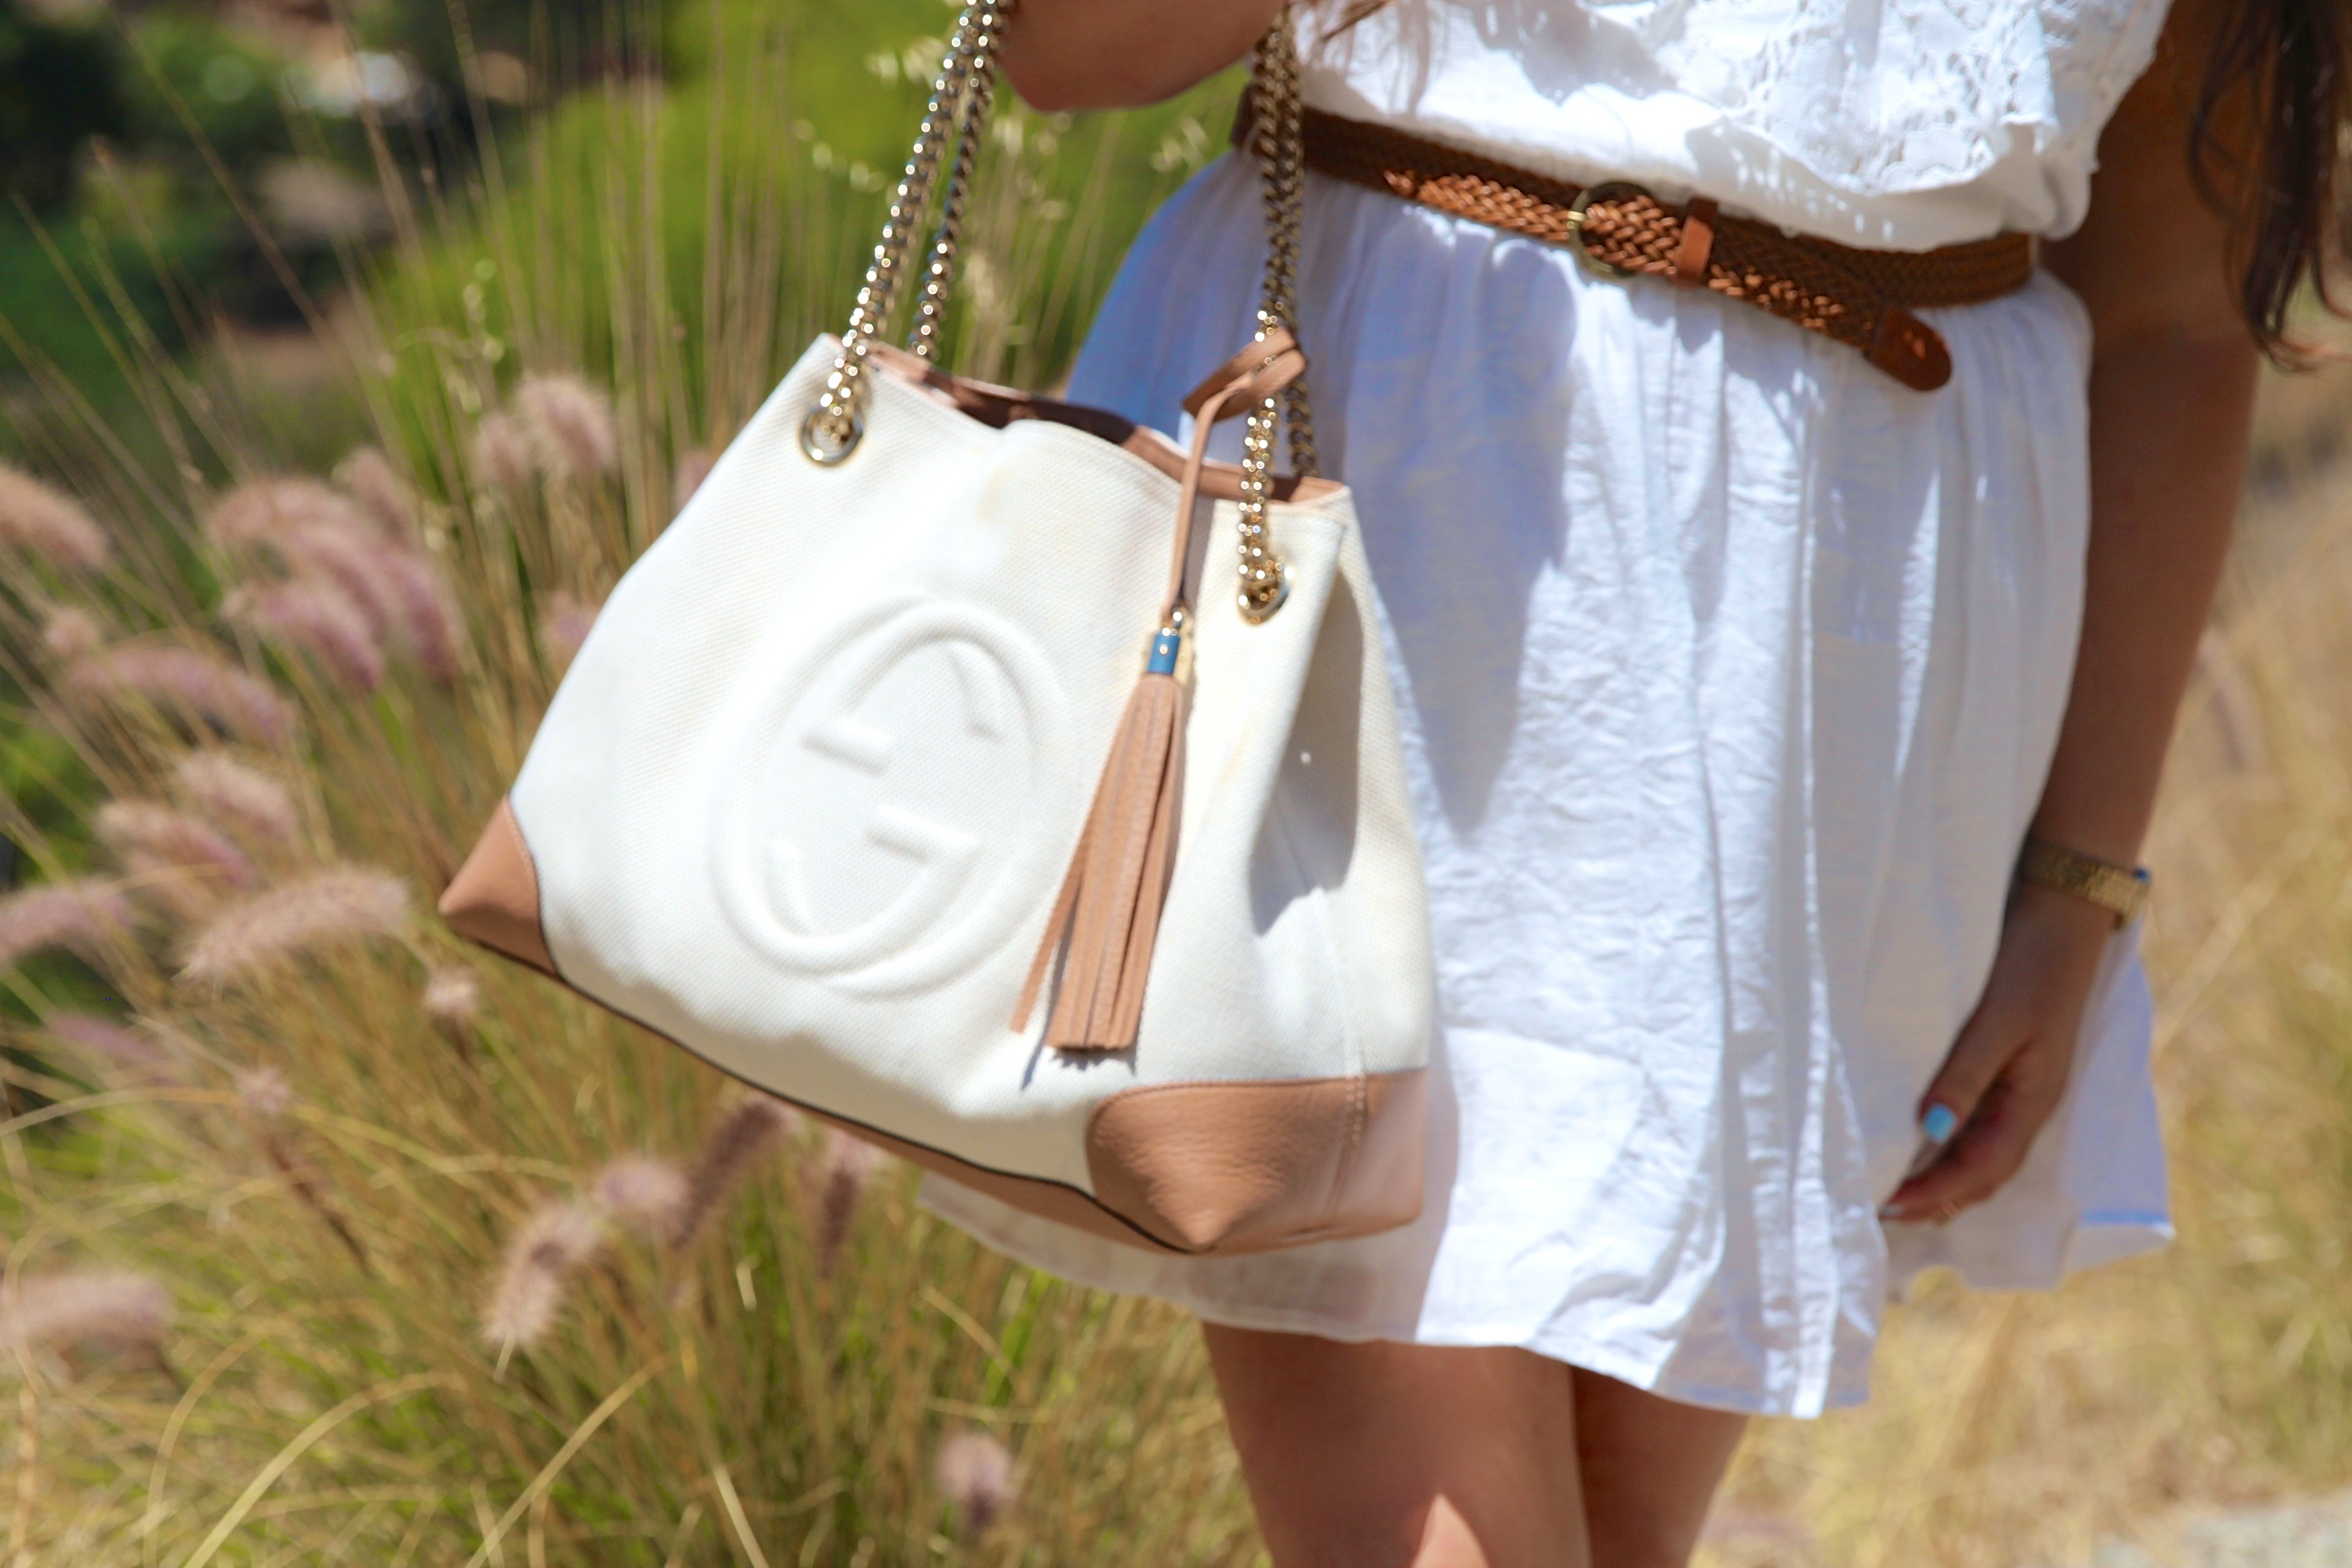 gucci soho tote, white gucci soho bag, gucci soho bag, fall handbags, missyonmadison, melissa tierney, white dress, little white dress, iz beyer, kohls, juniors dresses, little white dress, white after labor day, labor day weekend, fall fashion, back to school style, fashion blogger, white casual dress, la blogger, los angeles photography, fringe sandals, go jane, go jane sandals, black floppy hat, black sunglasses,